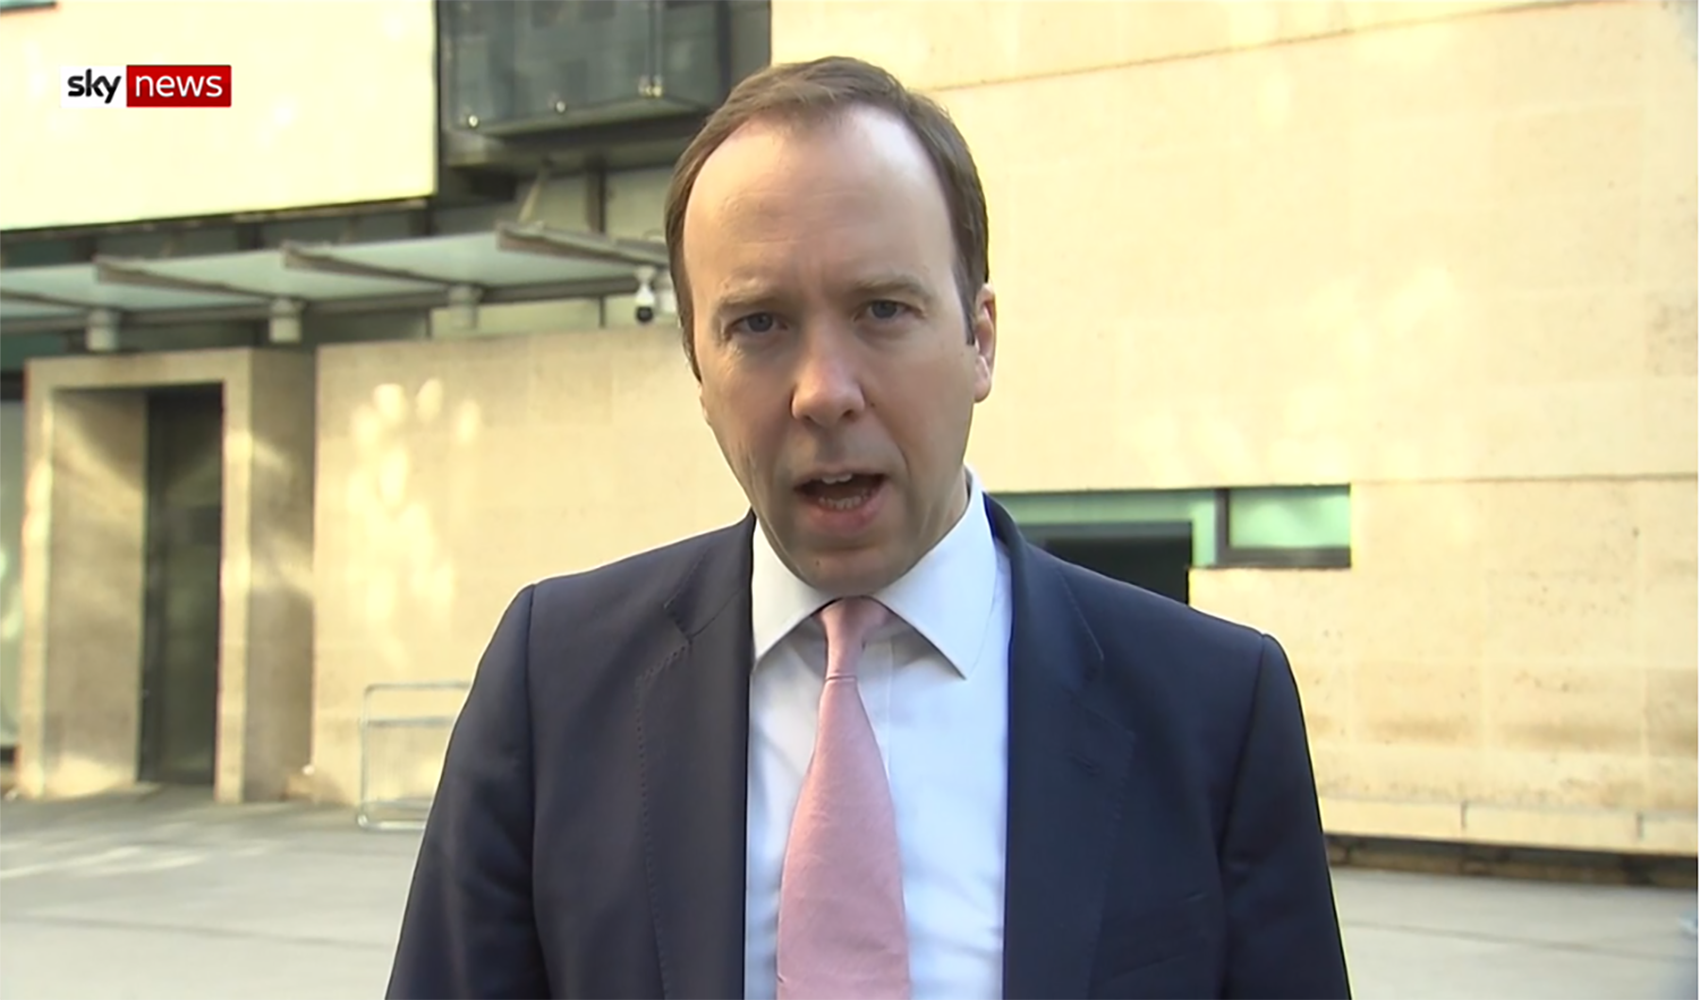 Sunday shows round-up: Outdoor exercise could be banned, says Health Secretary